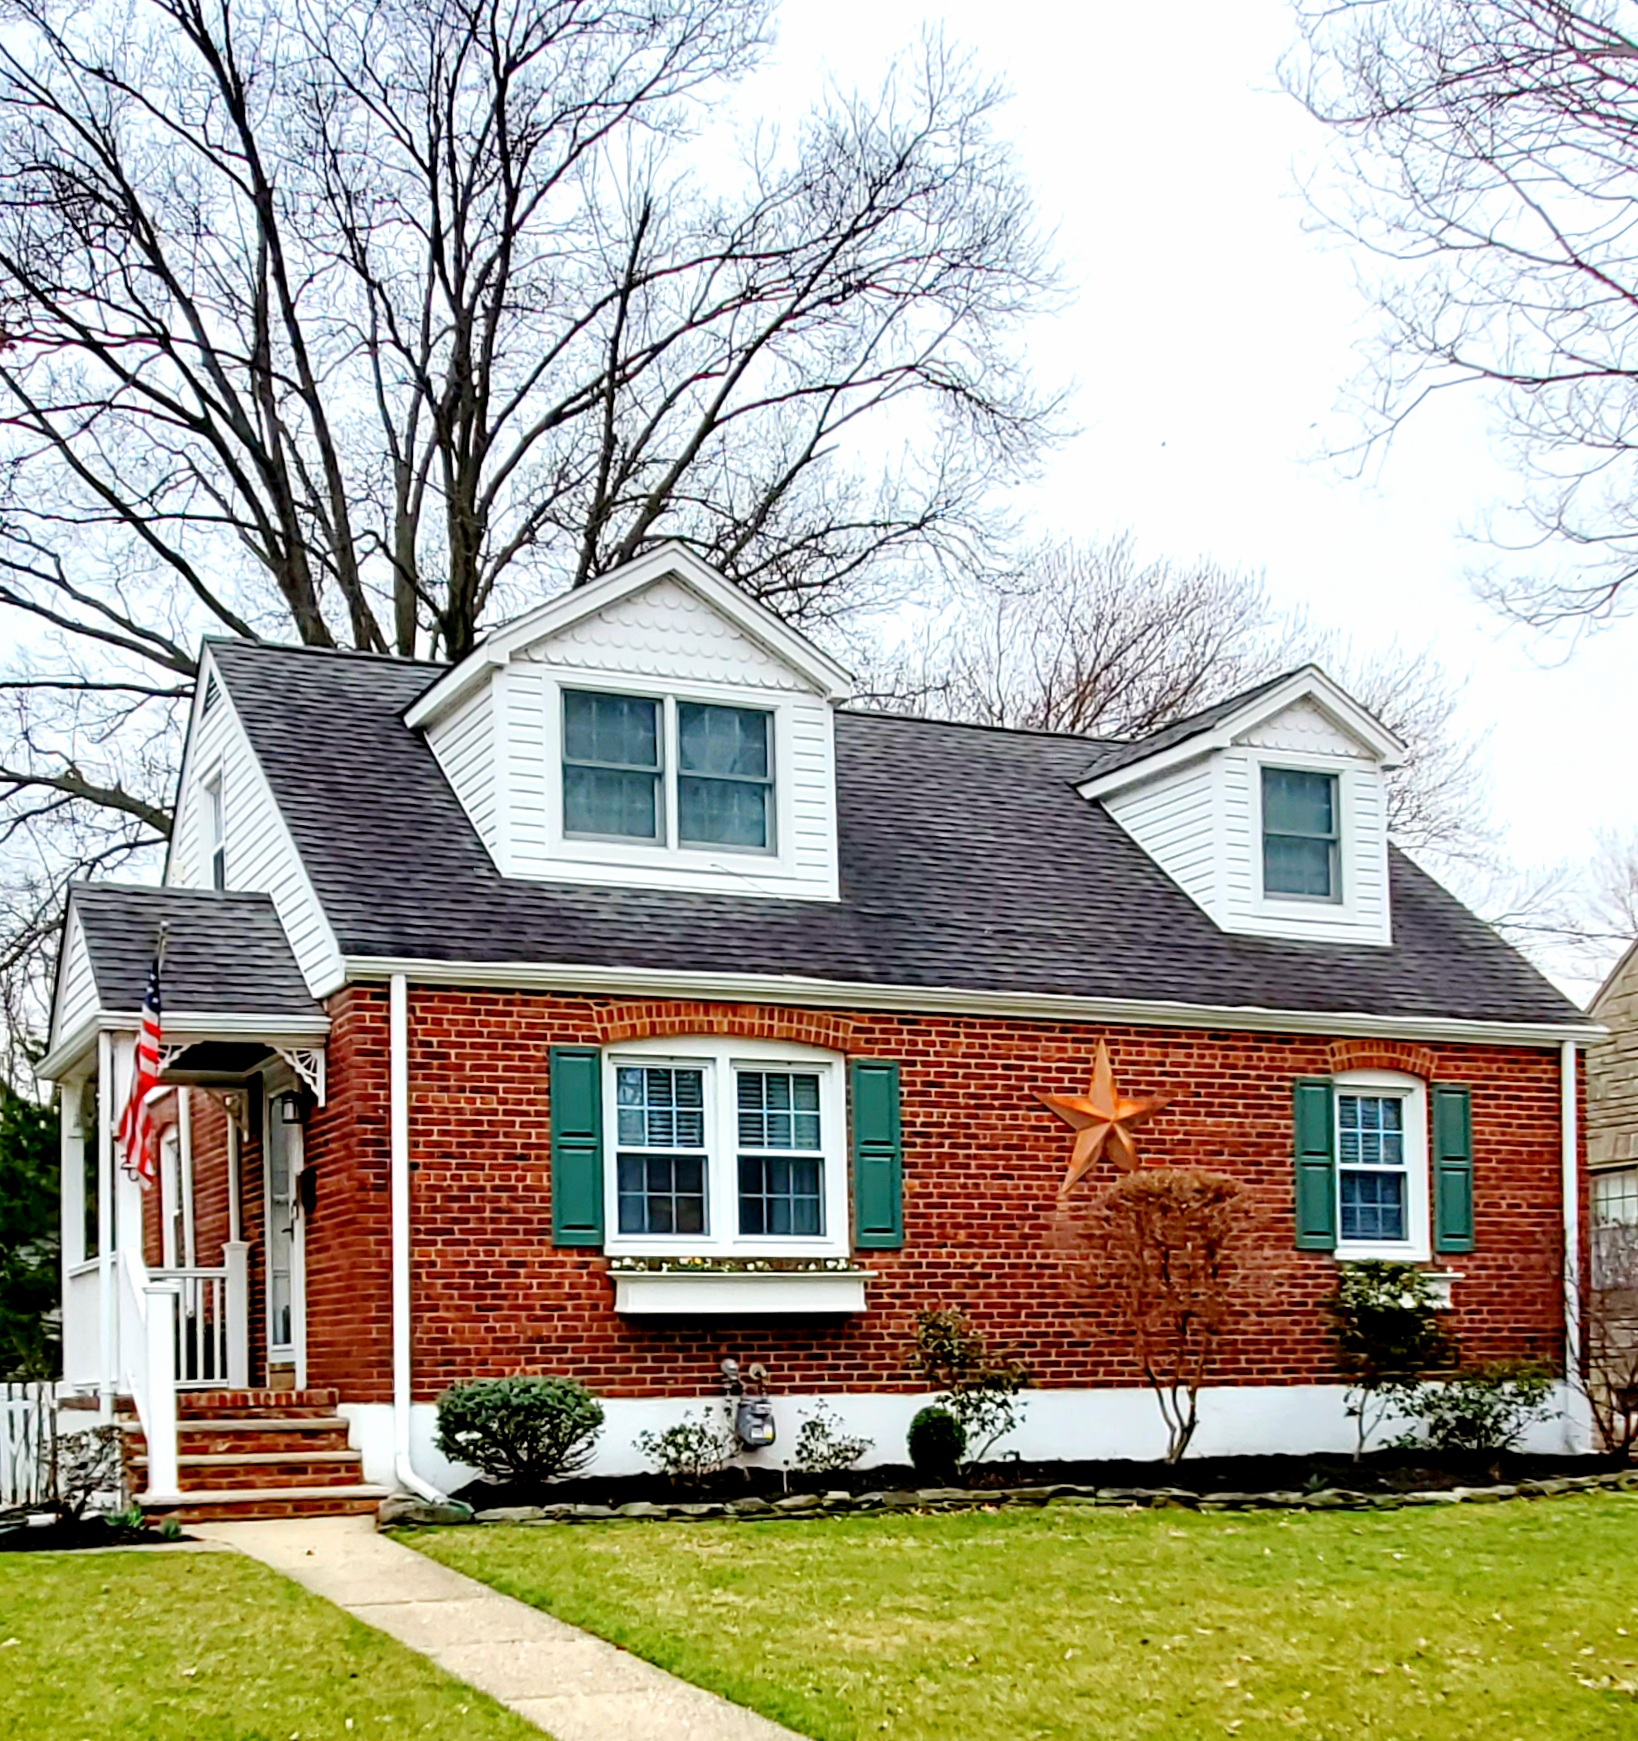 Welcome to 20 MacArthur Avenue, Cranford!